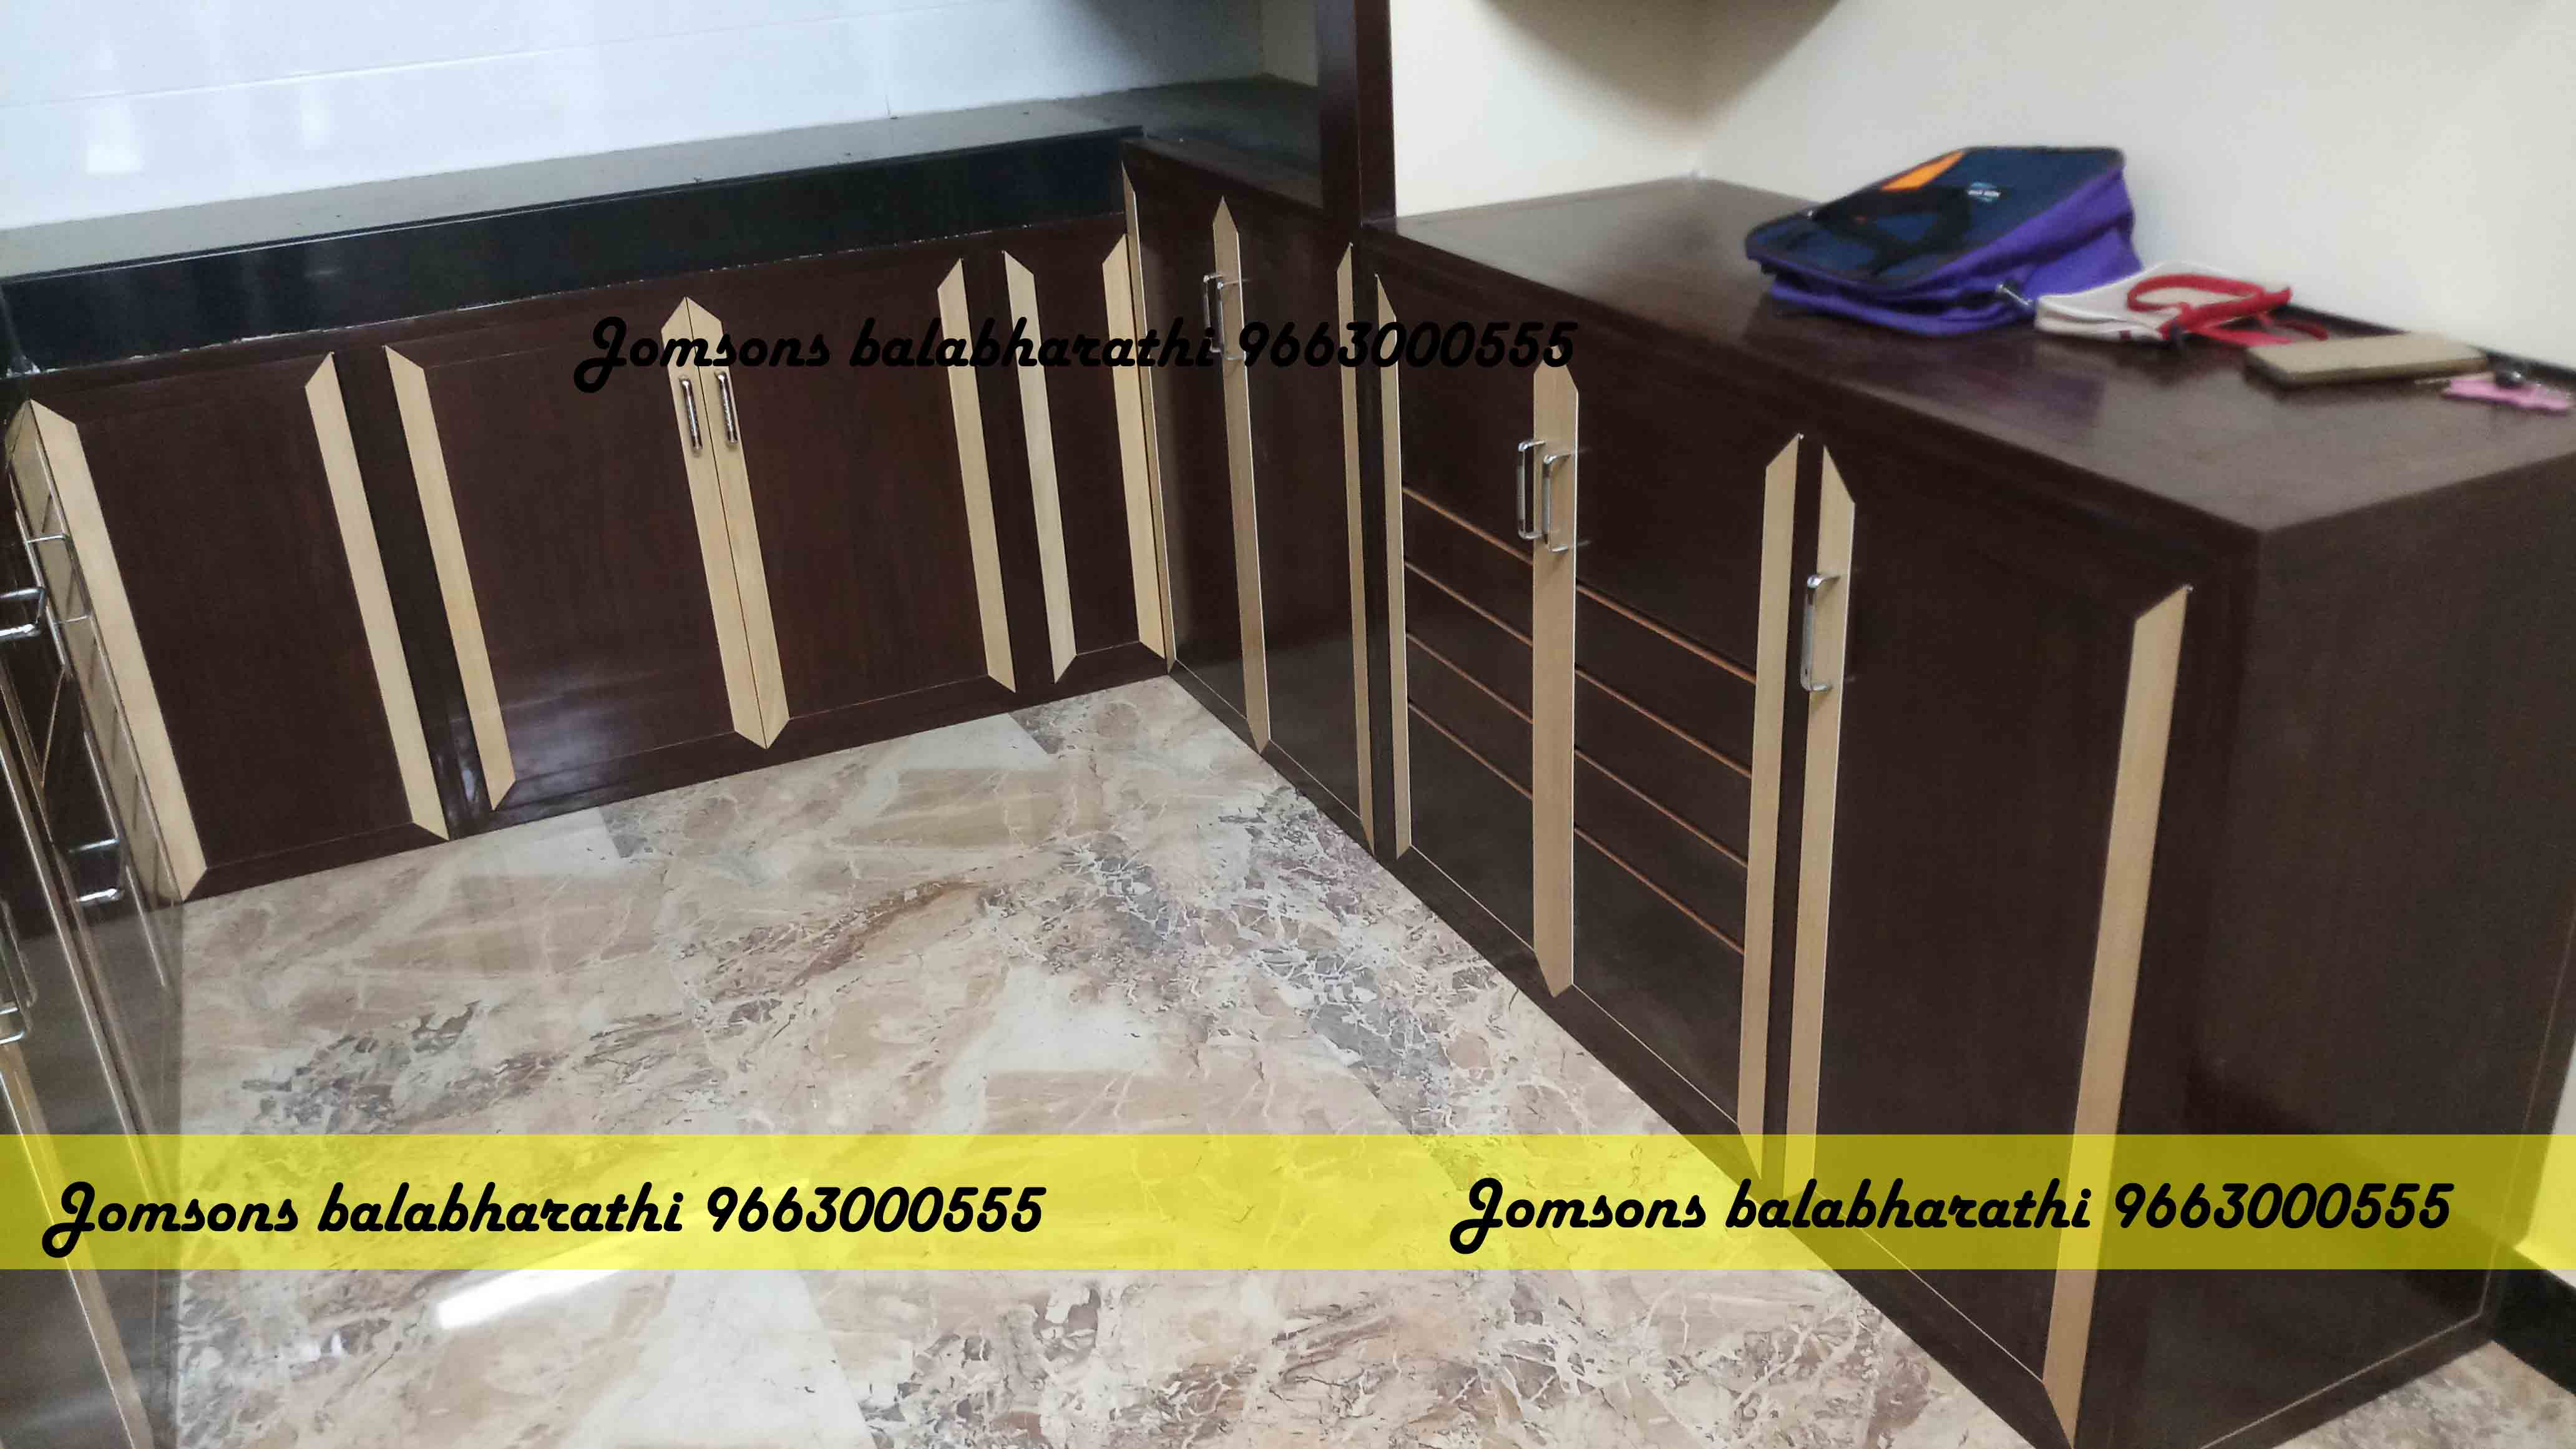 pvc kitchen underloft work in perundurai